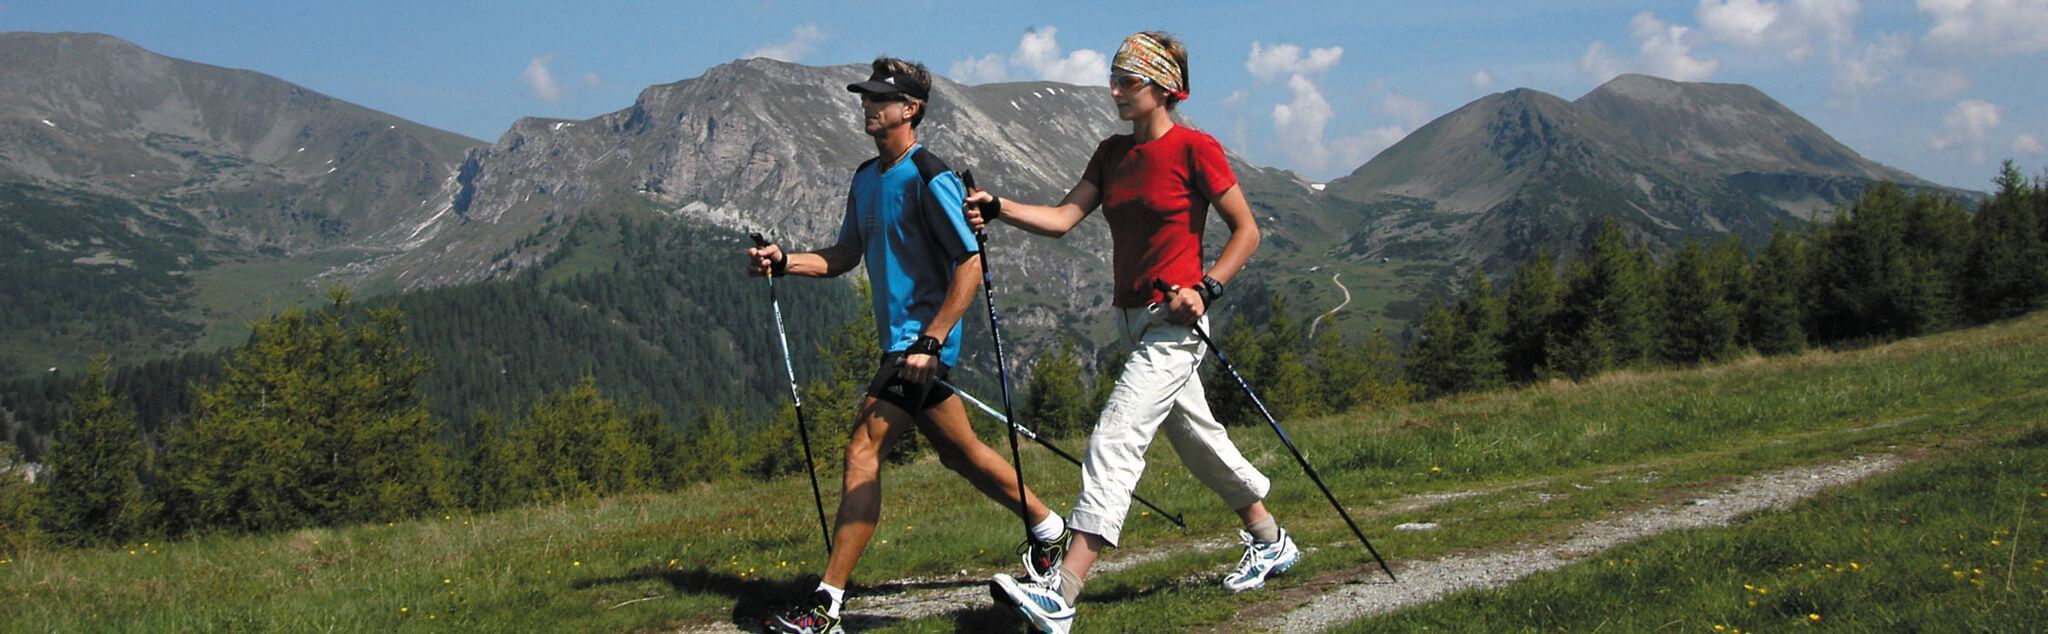 Nordic Walking a Aosta